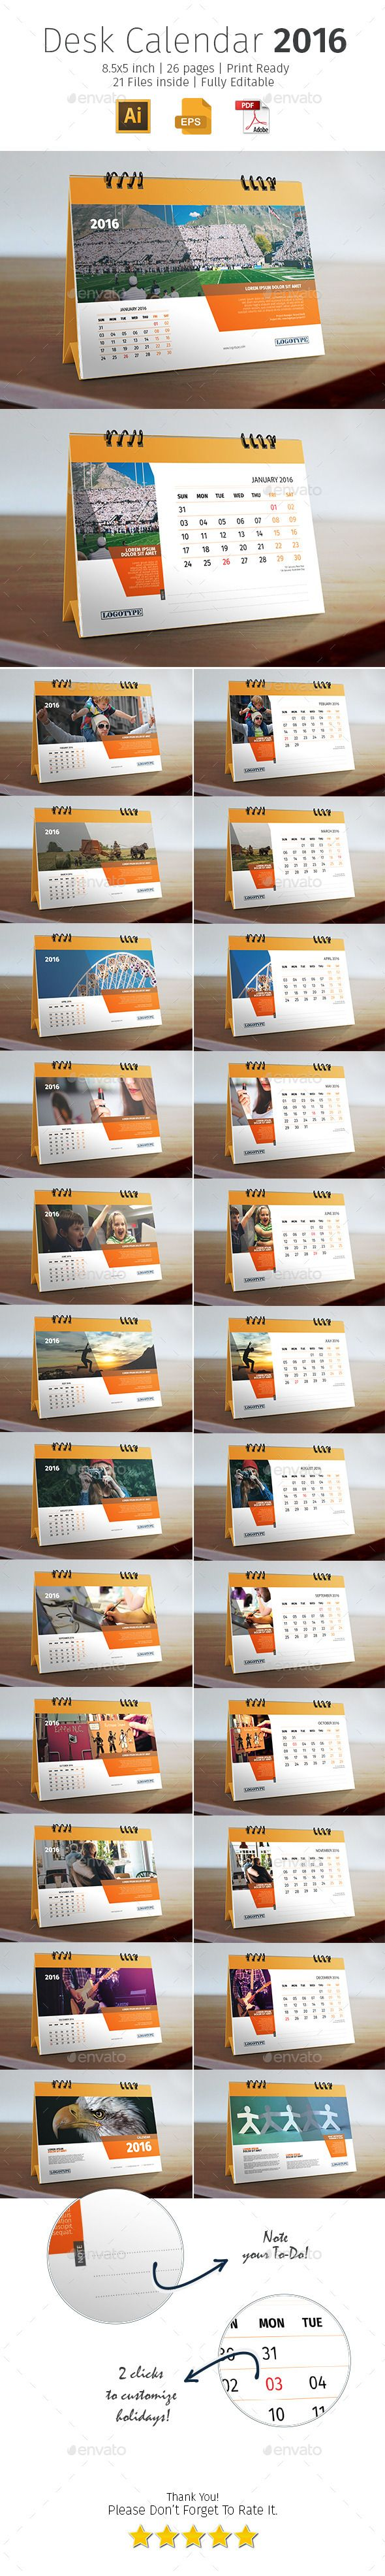 "Calendario de Escritorio Medidas: 8.5"" x 5"" Impresión Full Color"